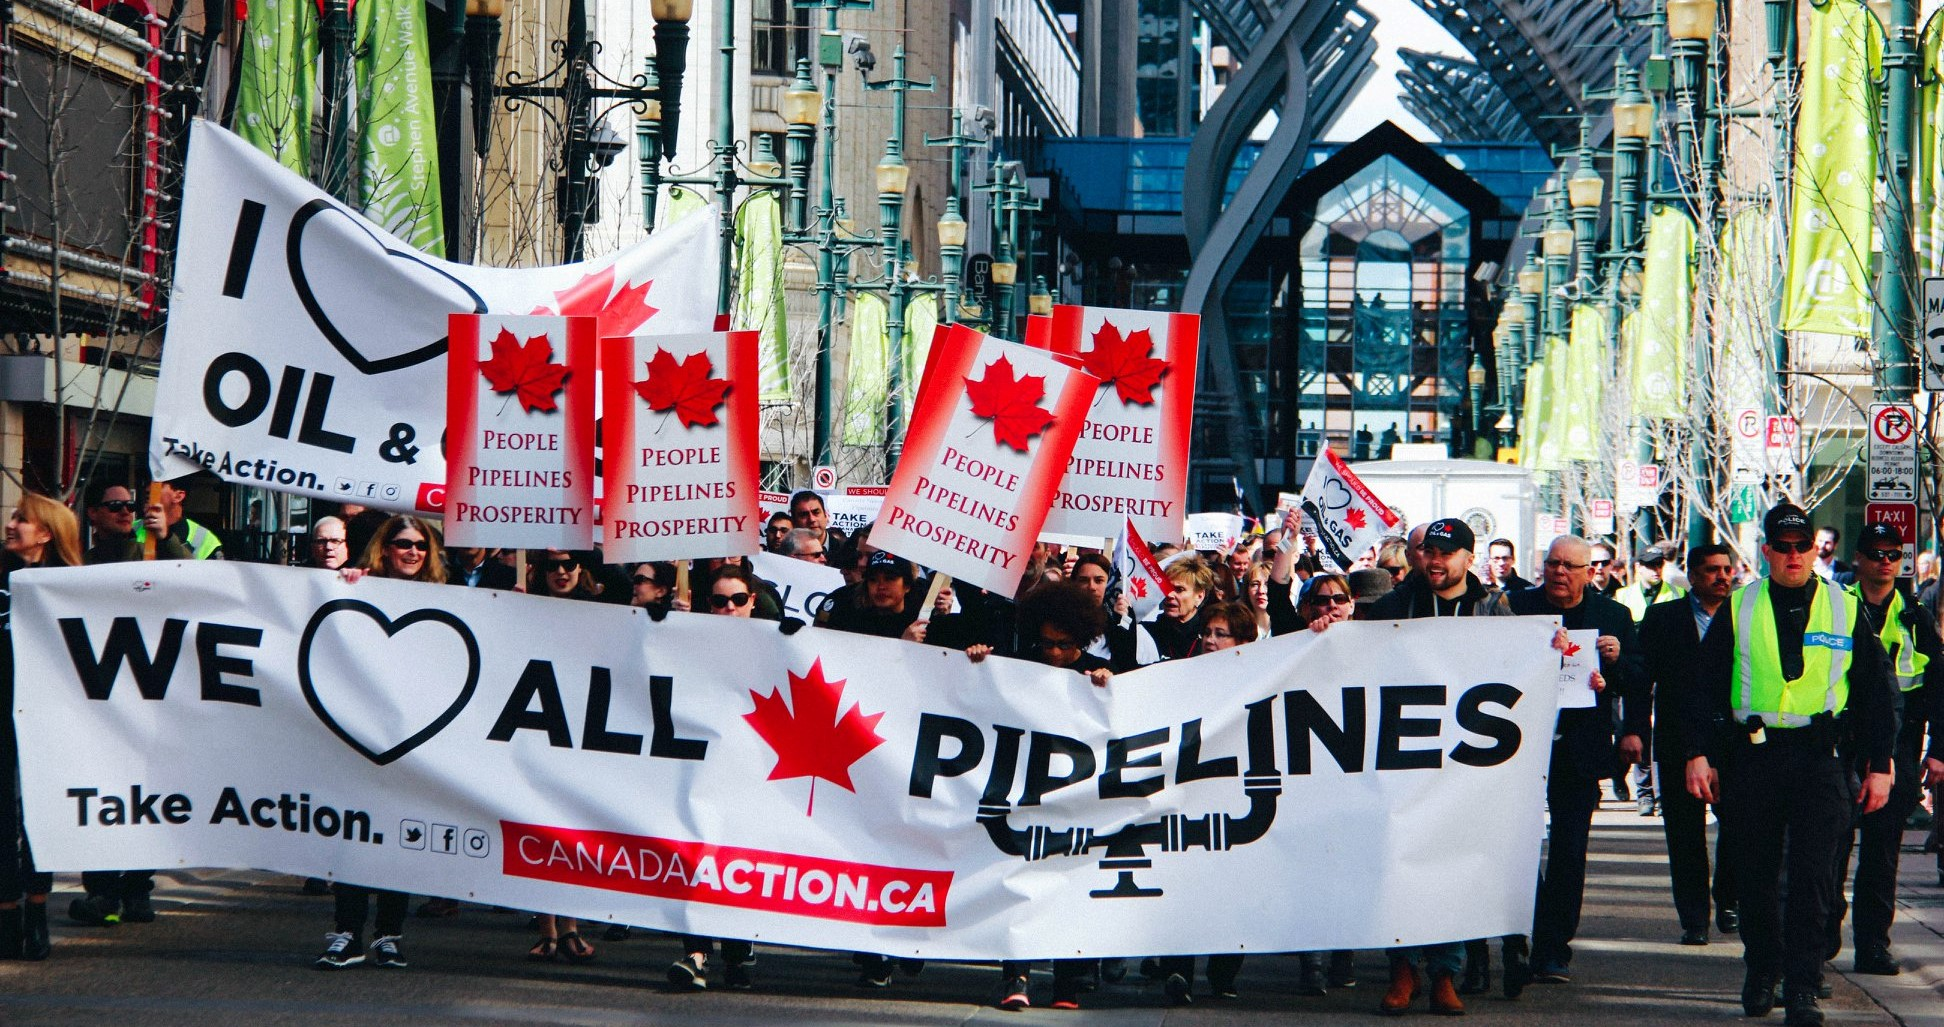 supports of Canadian pipelines rally in Calgary